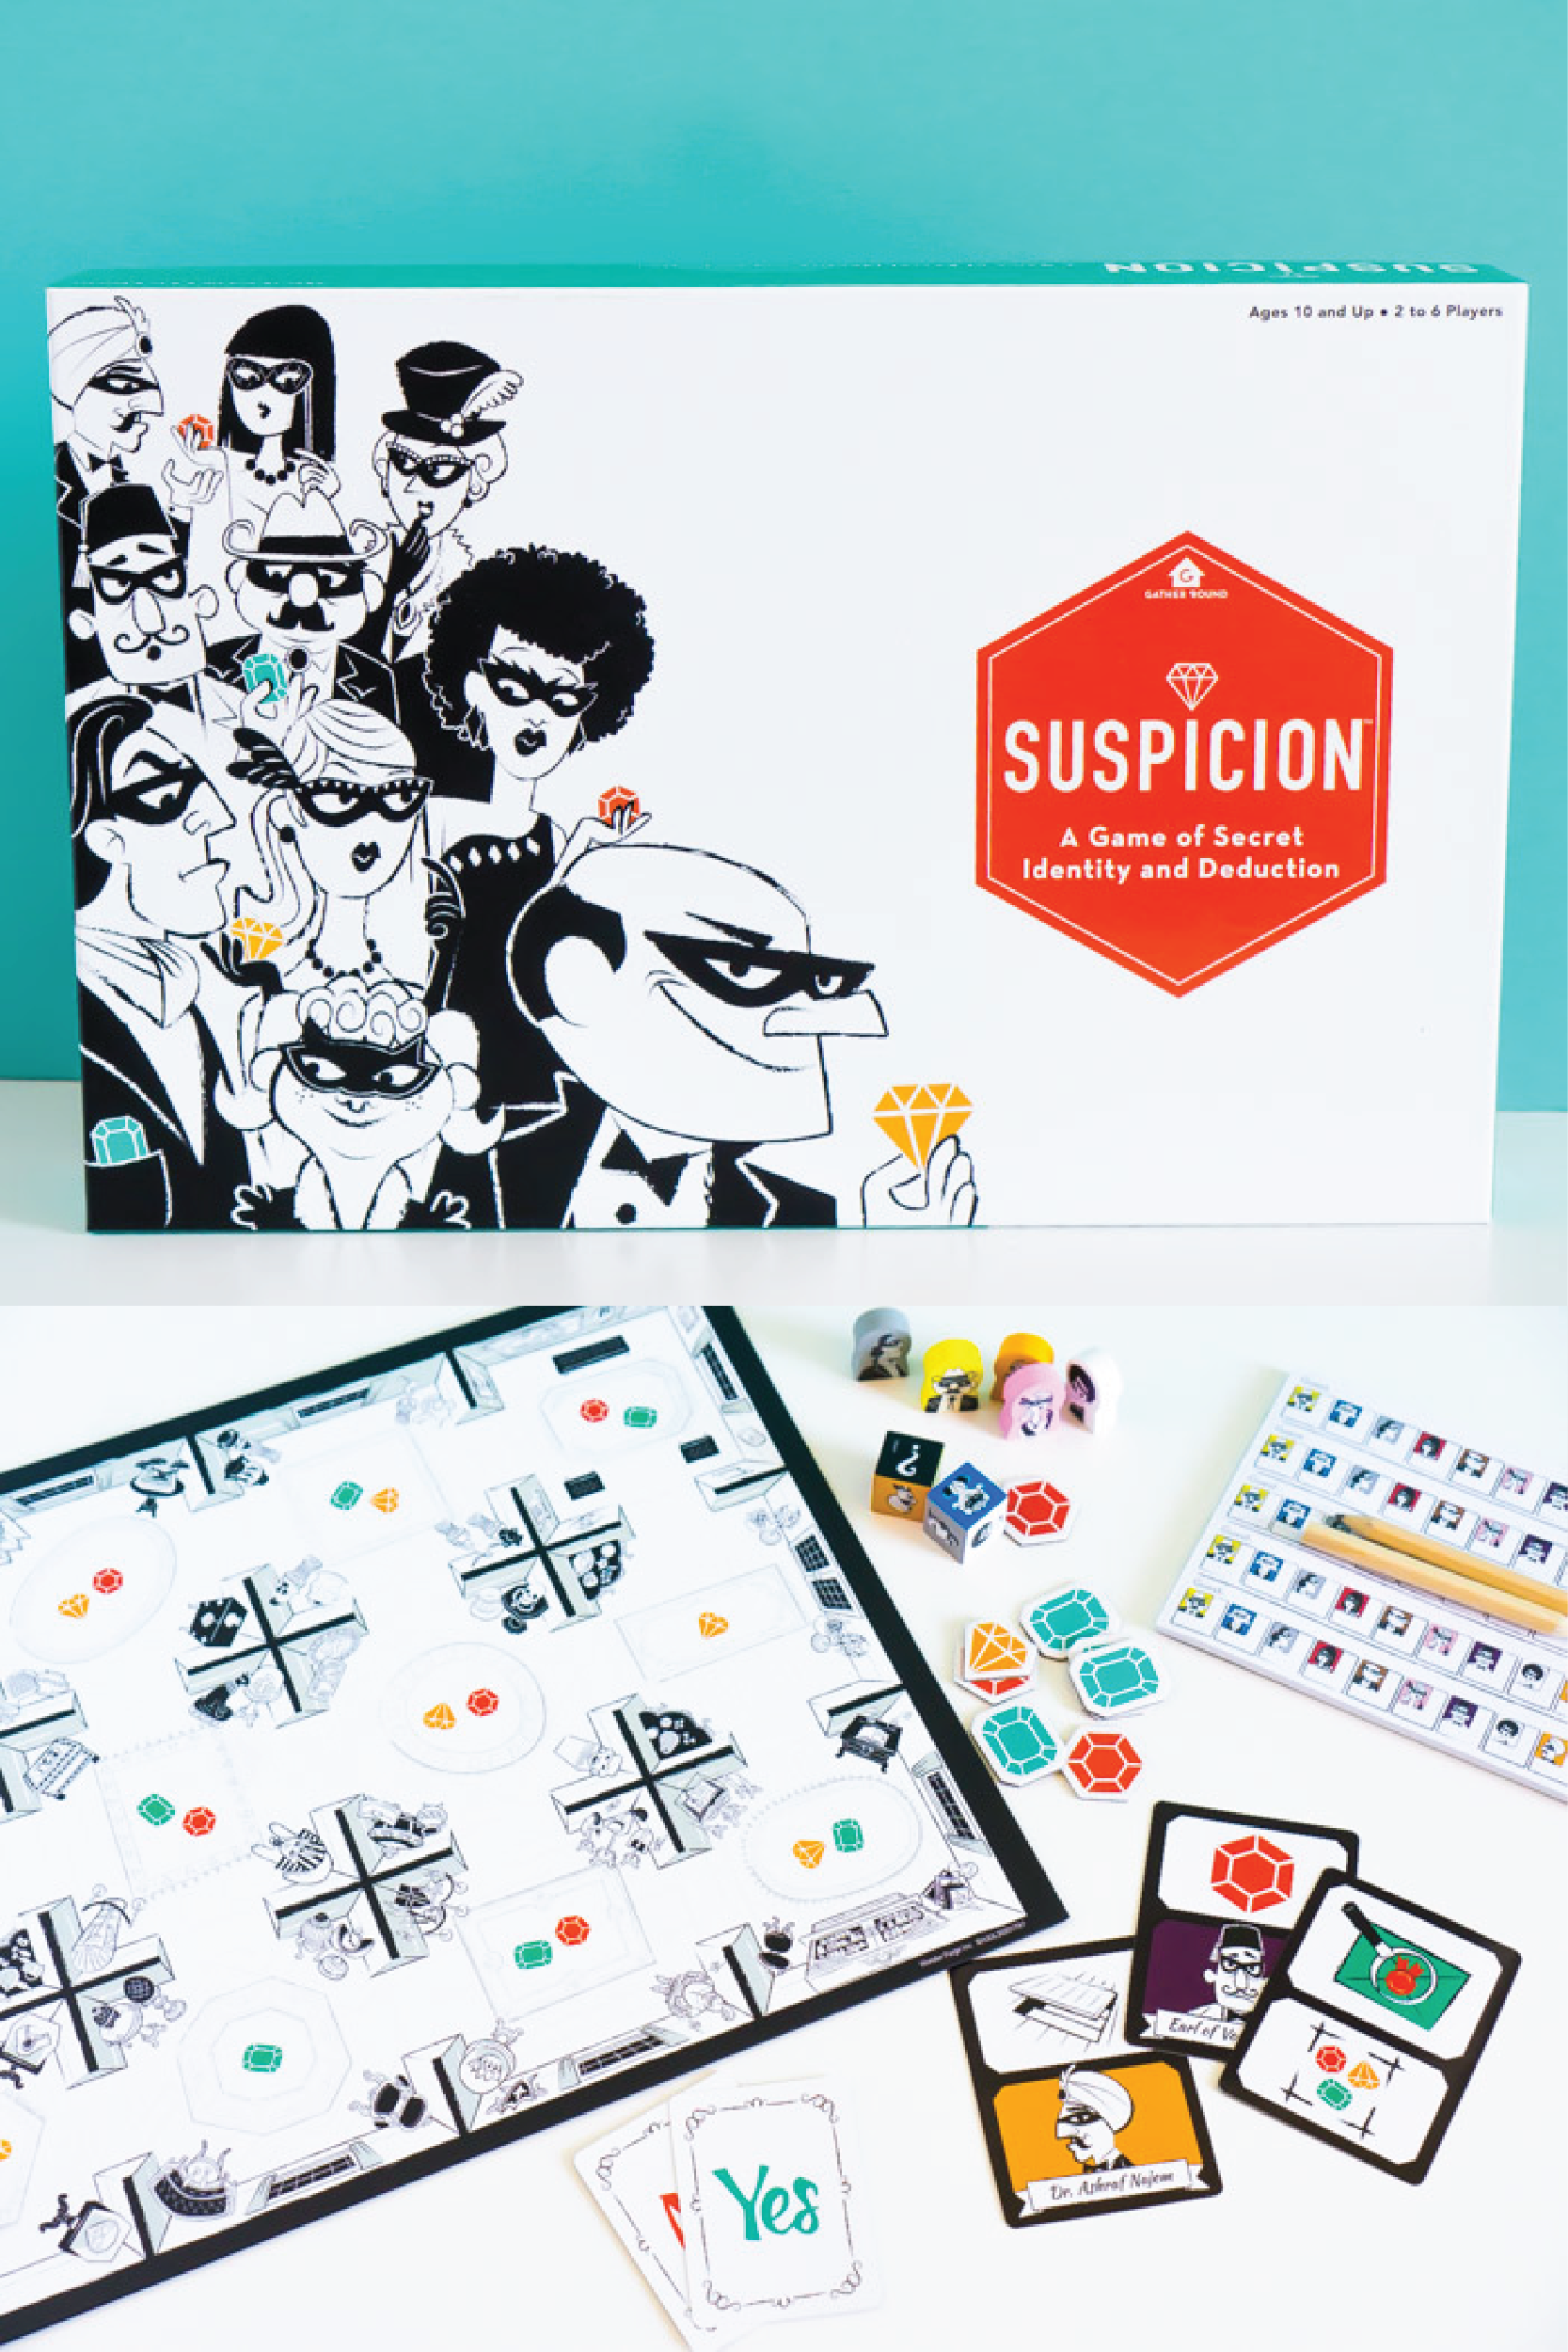 Suspicion is one of the newer adult board games